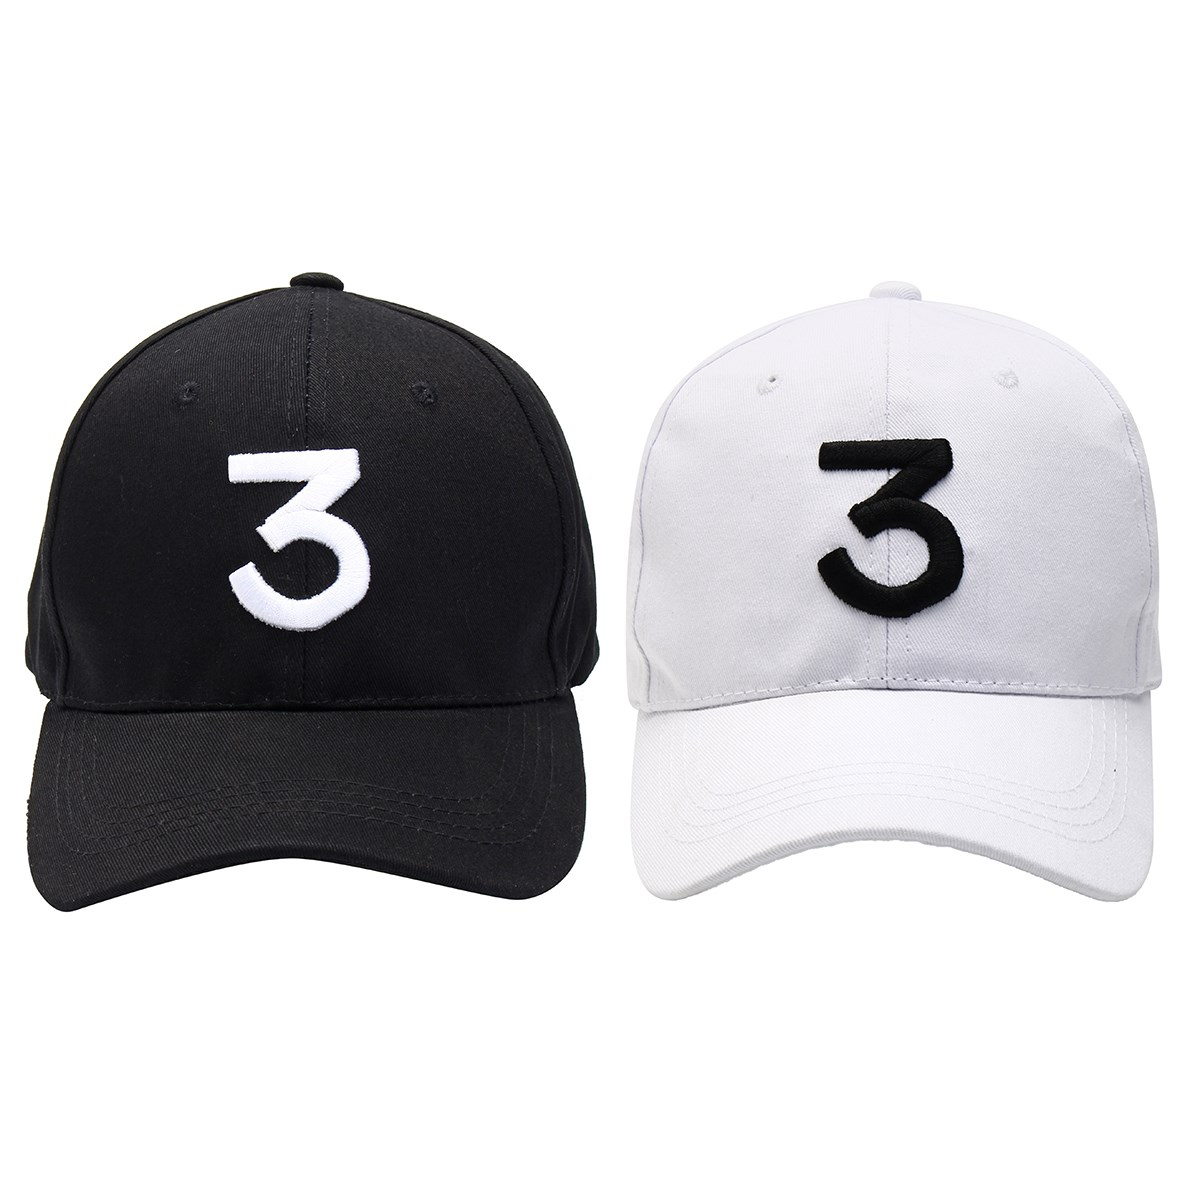 a6f97ed74f5 New Men Women Chance 3 Hat Baseball Cap Cotton Summer Spring Outdoor Casual  Snapback Hats Embroidery Letters Visor Sun Caps-in Baseball Caps from  Apparel ...